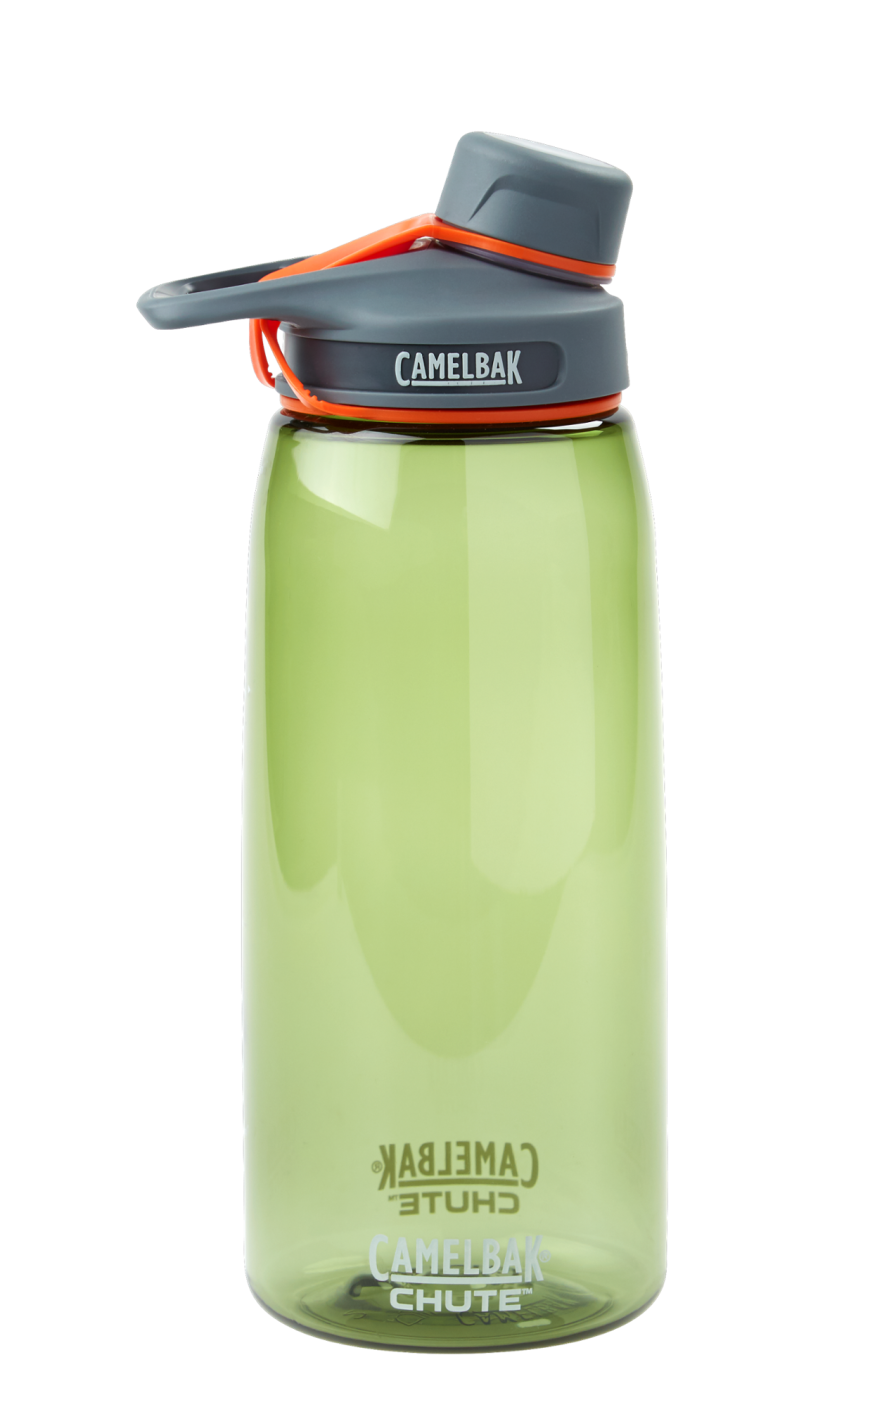 CamelBak 1 Liter Chute Water Bottle.png